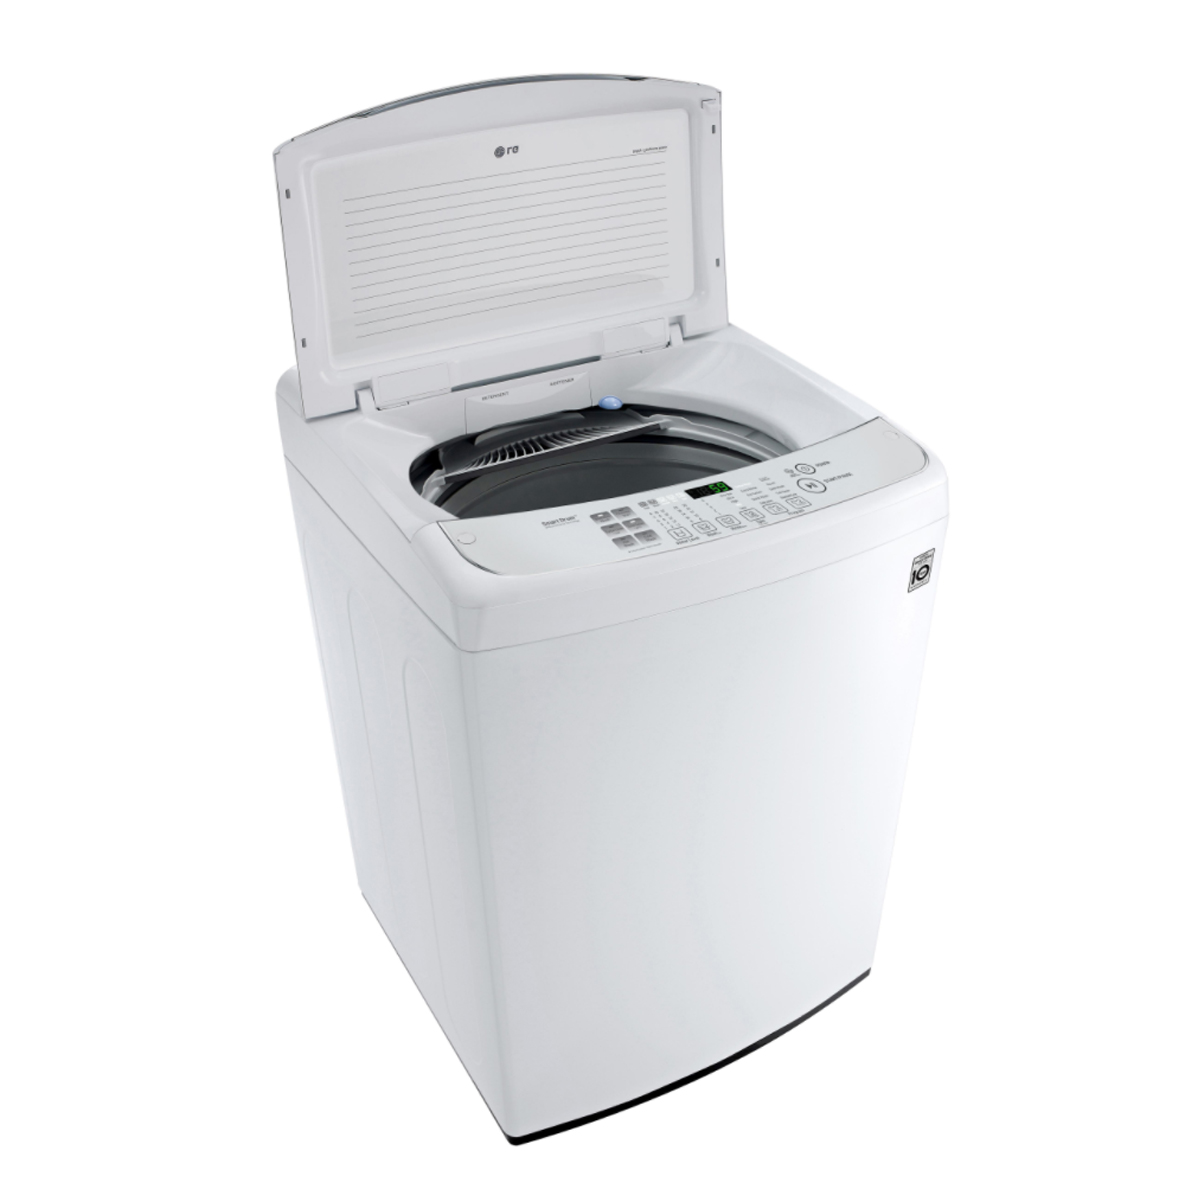 LG WTG9032WF 9kg Top Load Washing Machine 136646